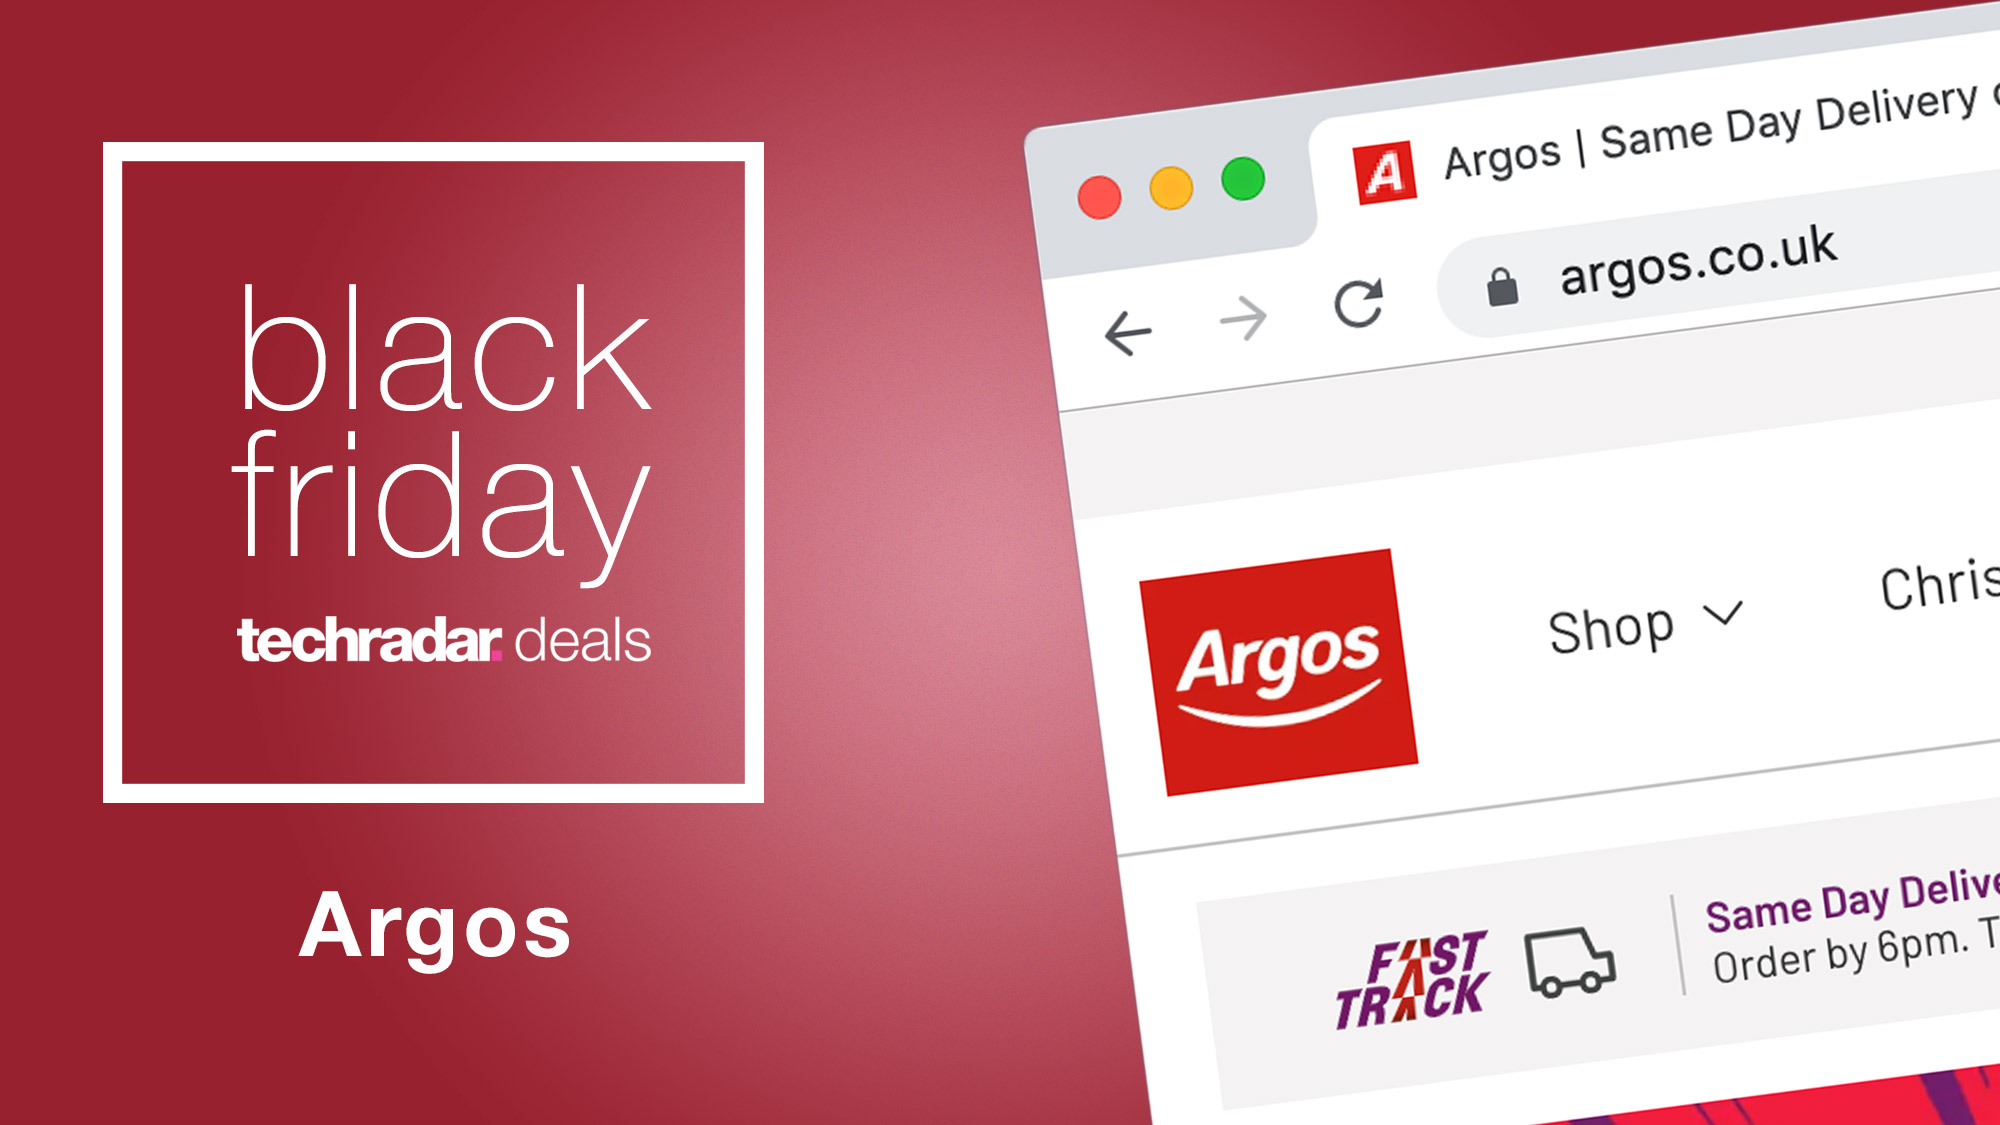 Argos Black Friday Deals 2020 Huge Savings On Tvs Gaming Laptops And Appliances Techradar